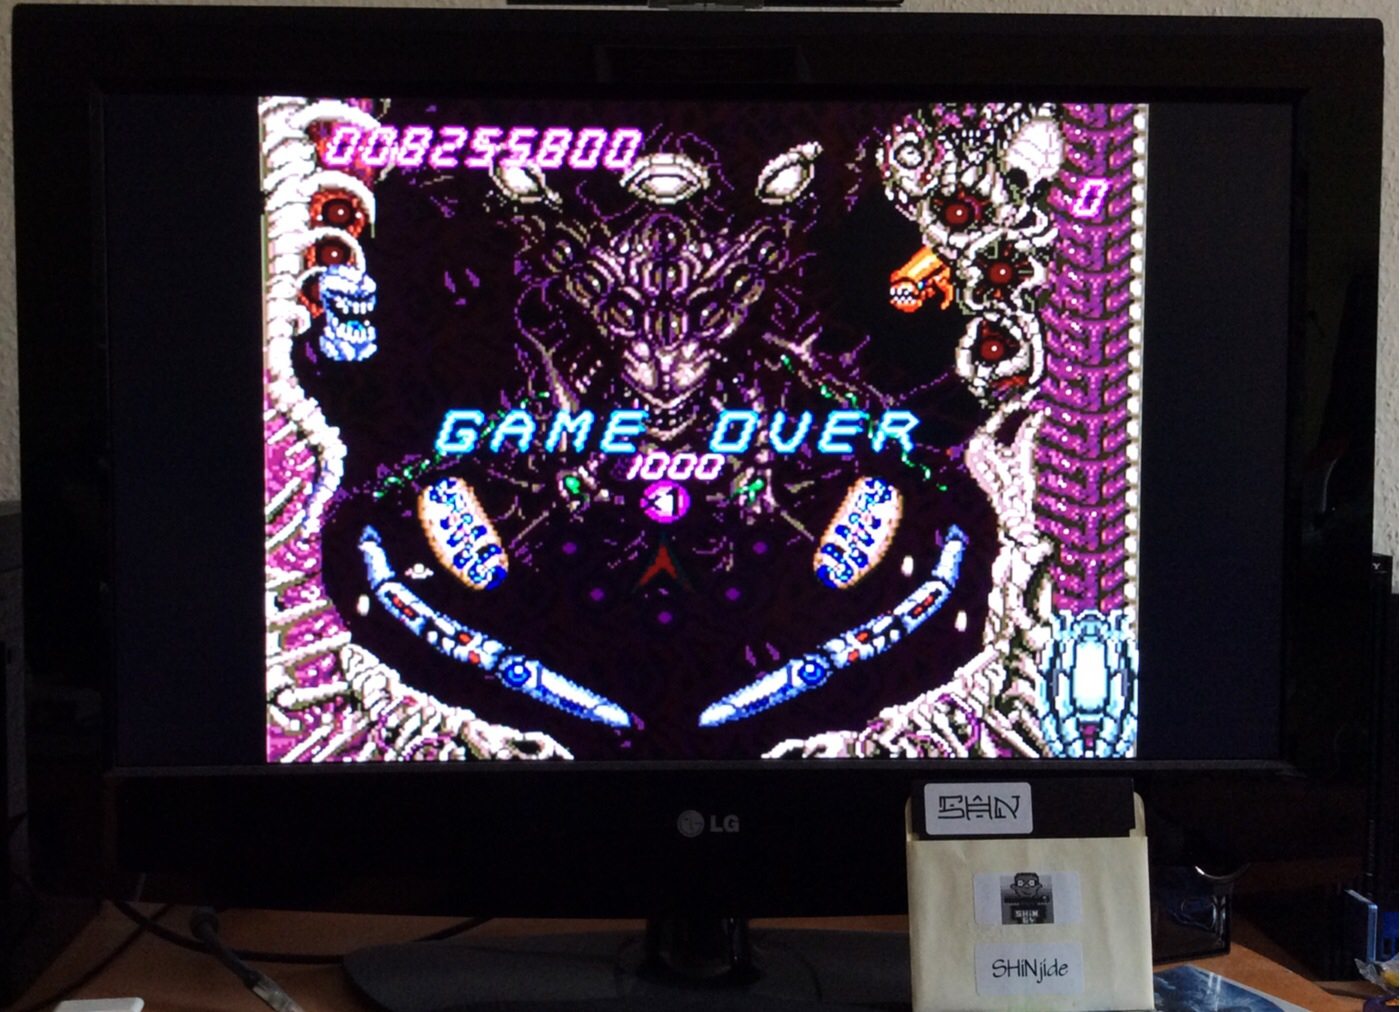 SHiNjide: Alien Crush (TurboGrafx-16/PC Engine Emulated) 8,255,800 points on 2014-06-21 06:52:04